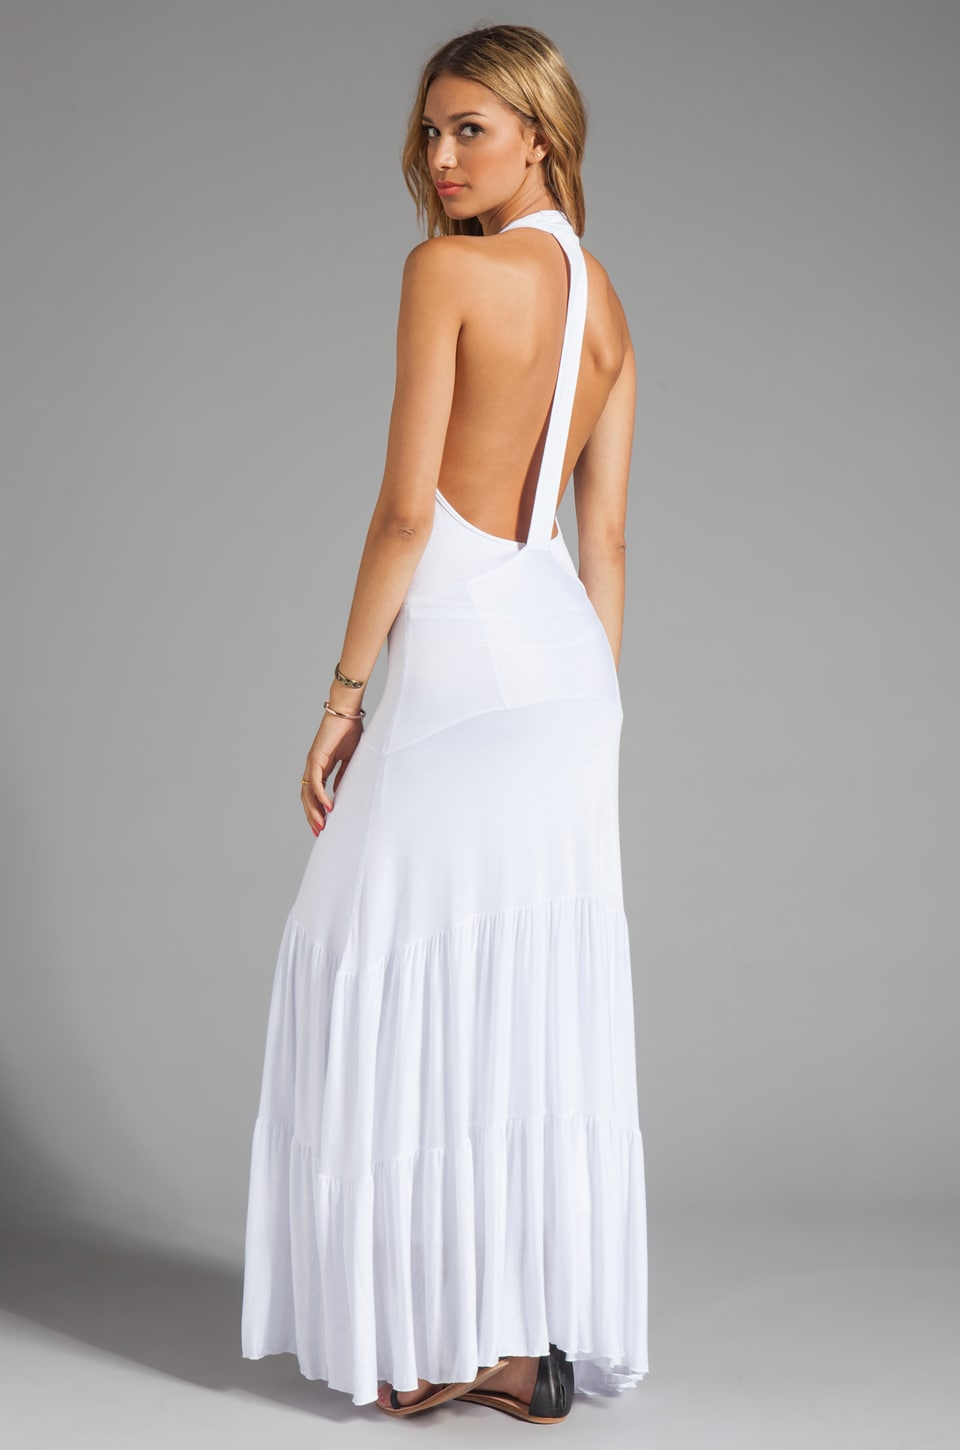 Tylie White Flare Dress in White